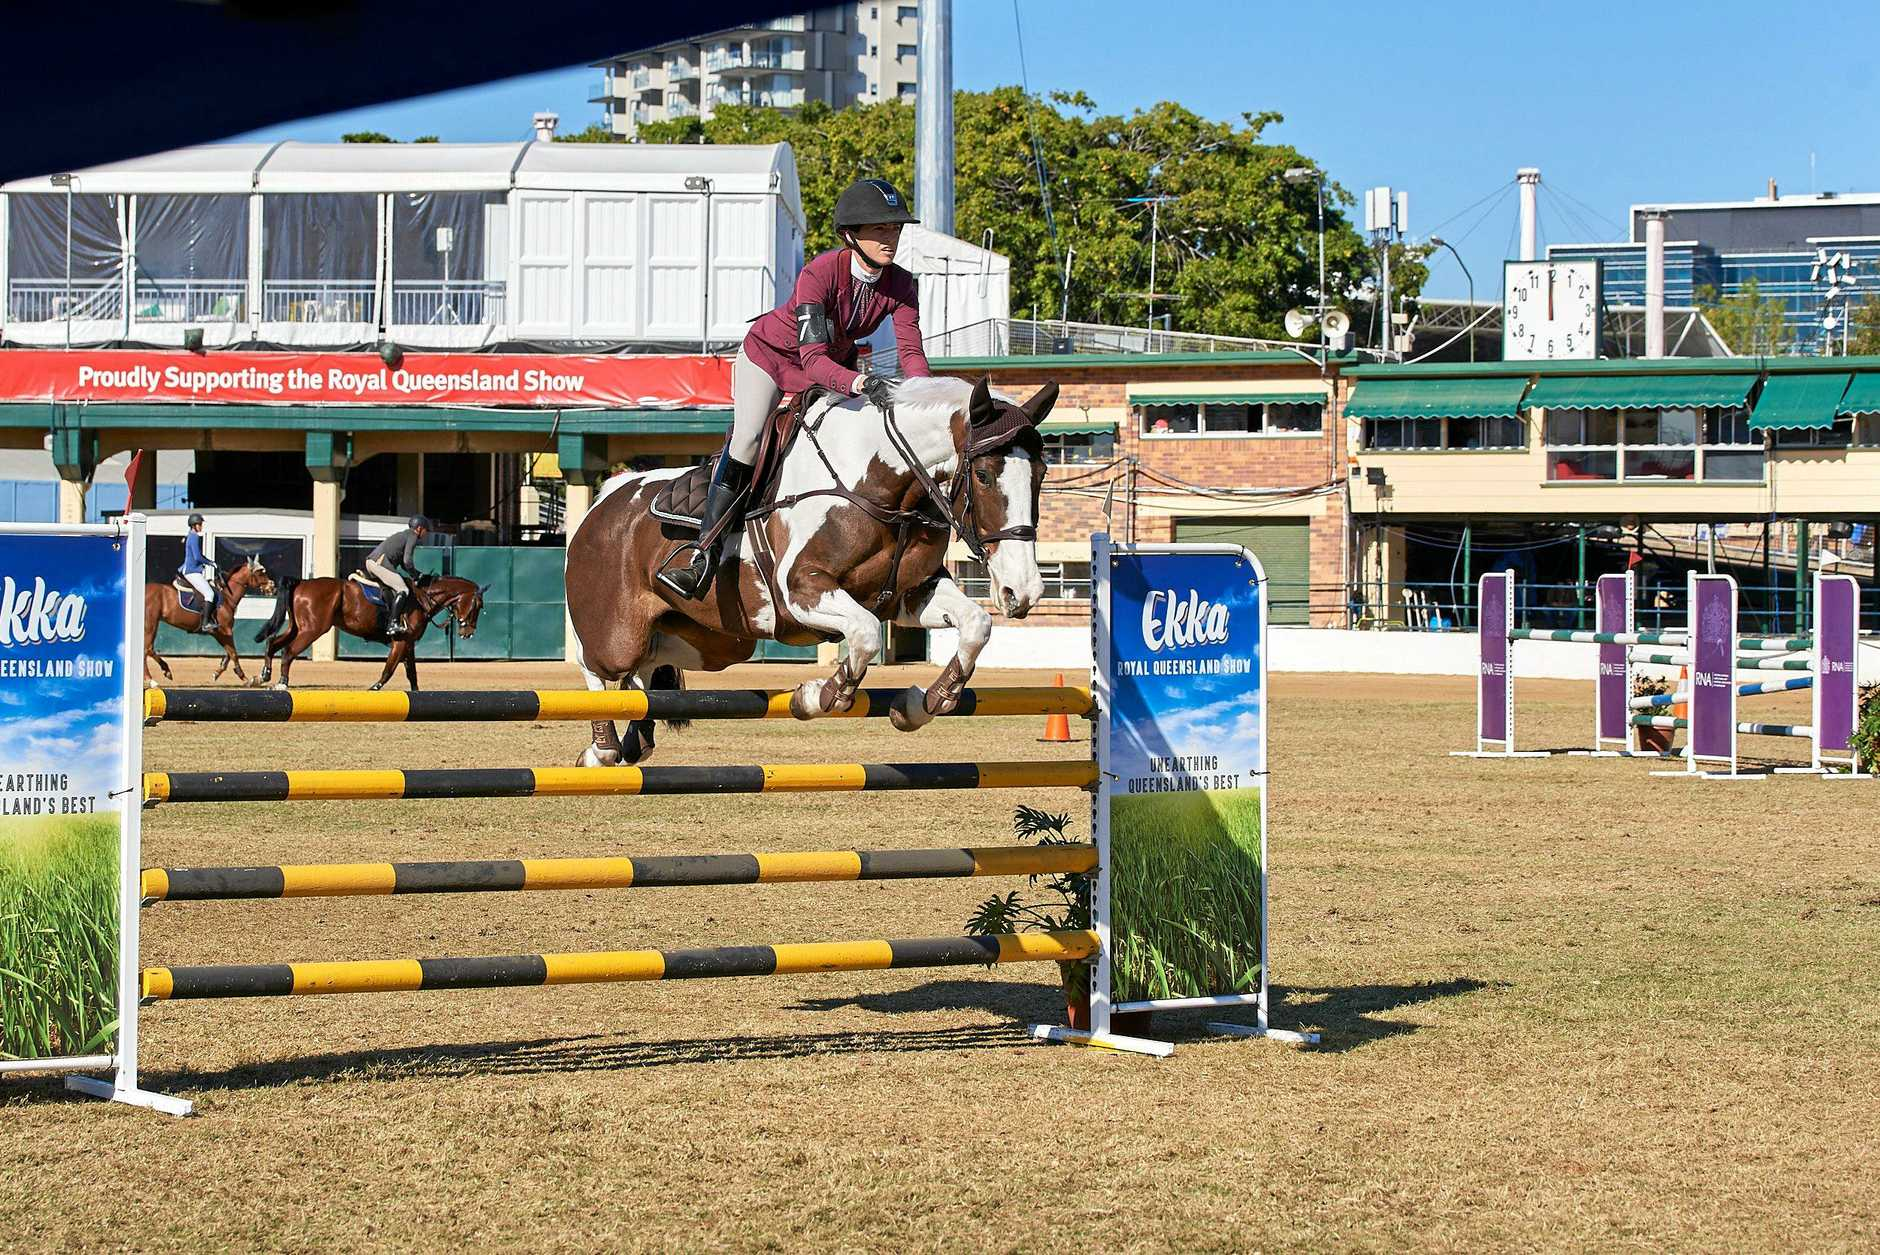 The equestrian activities always draw a big crowd.